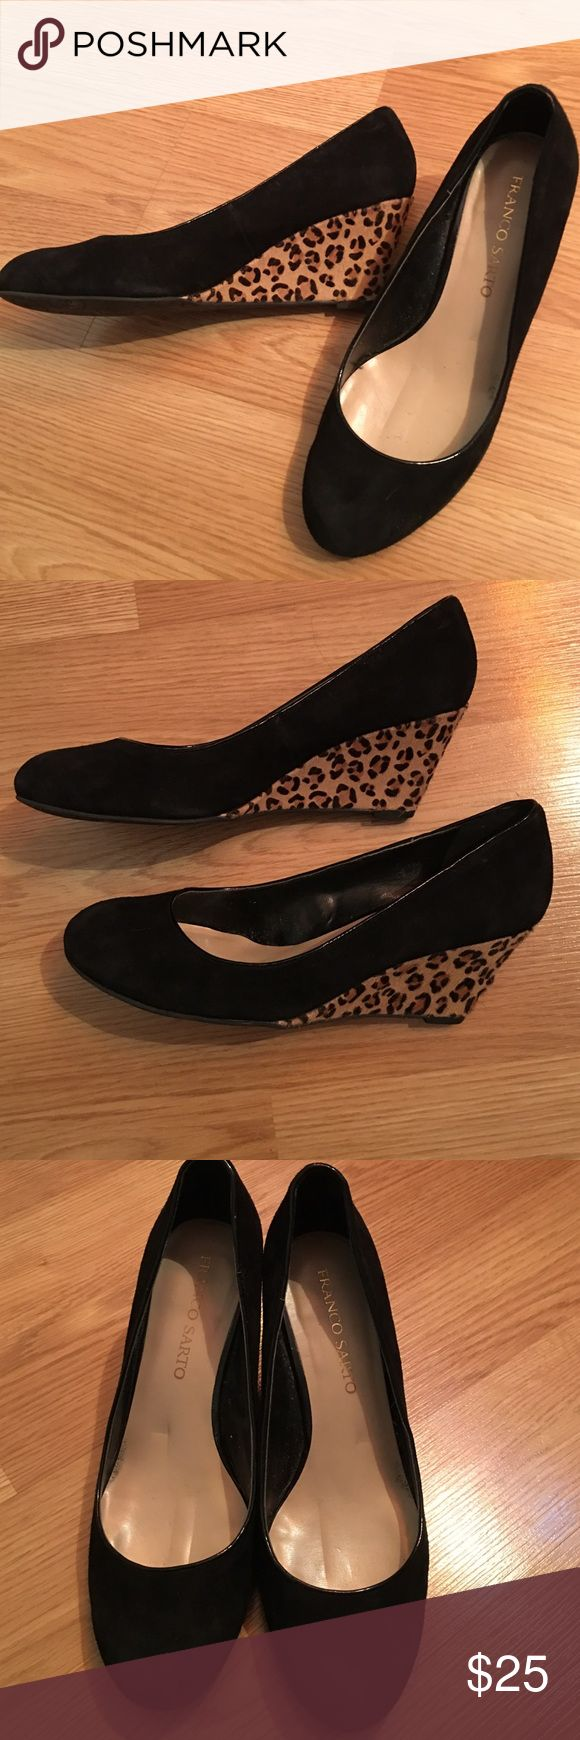 Franco Sarto Suede wedges with leopard heel Black suede wedge with leopard trim. One small blemish on heel but barely noticeable. Priced well! Franco Sarto Shoes Wedges